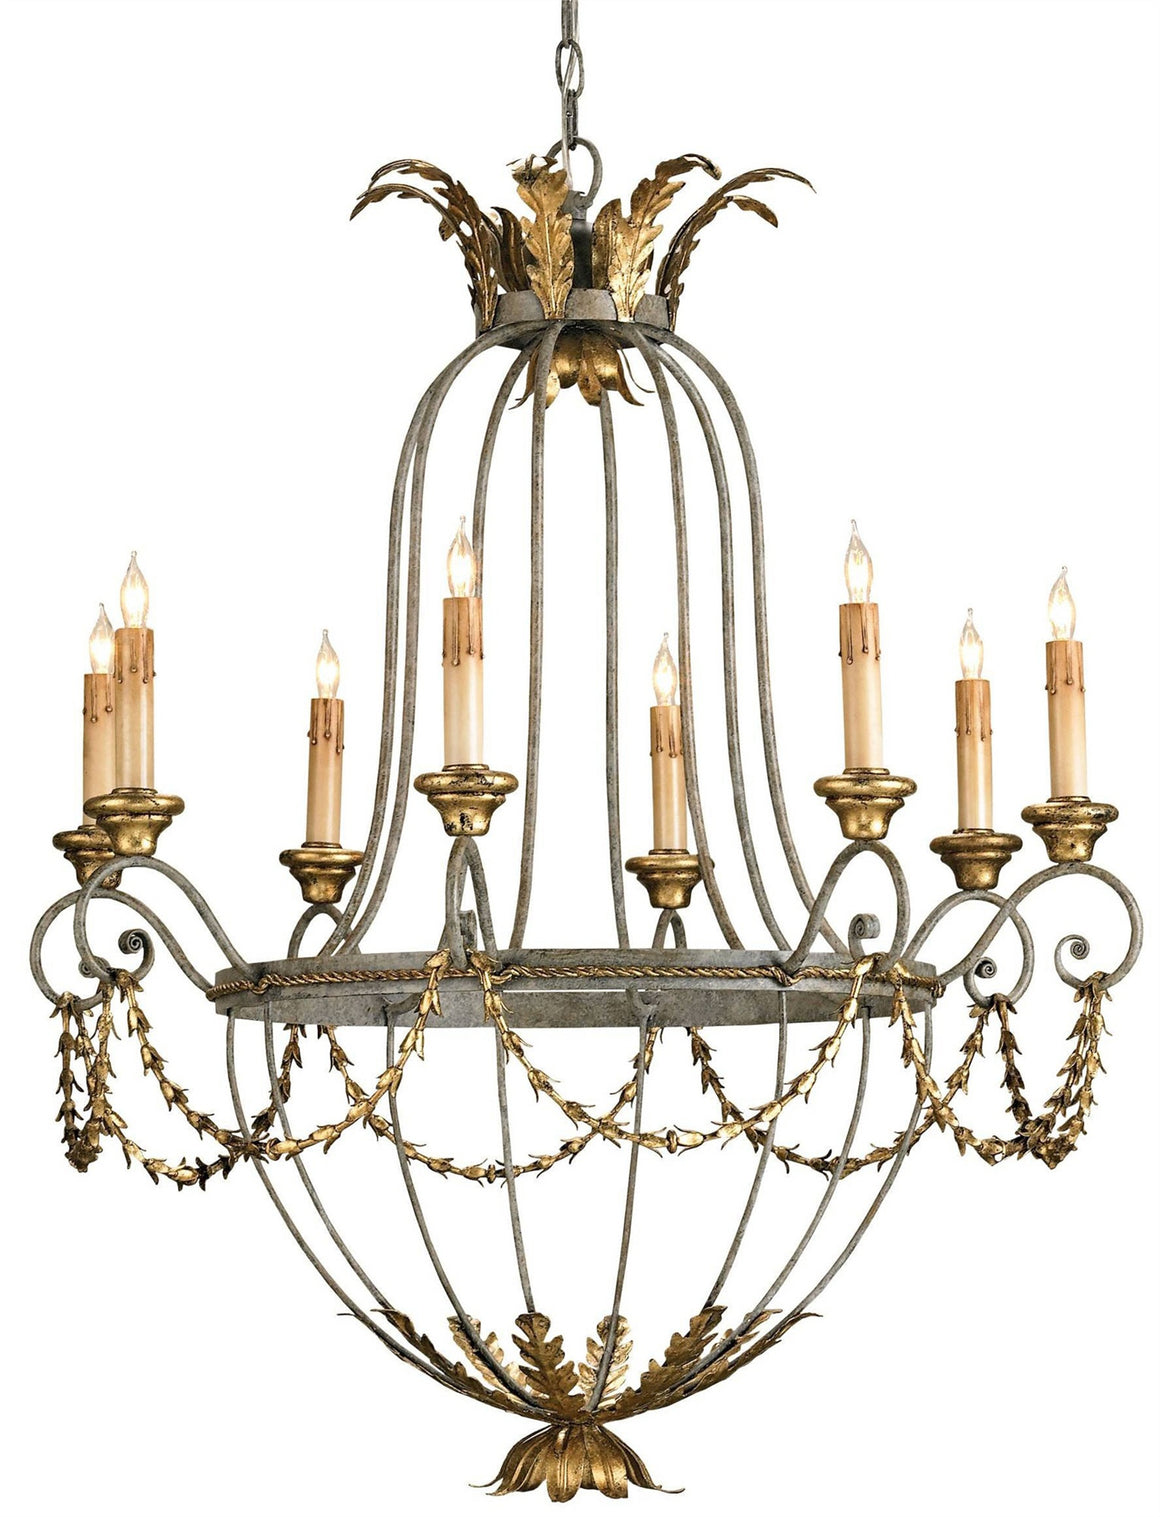 Currey and Company Elegance Chandelier